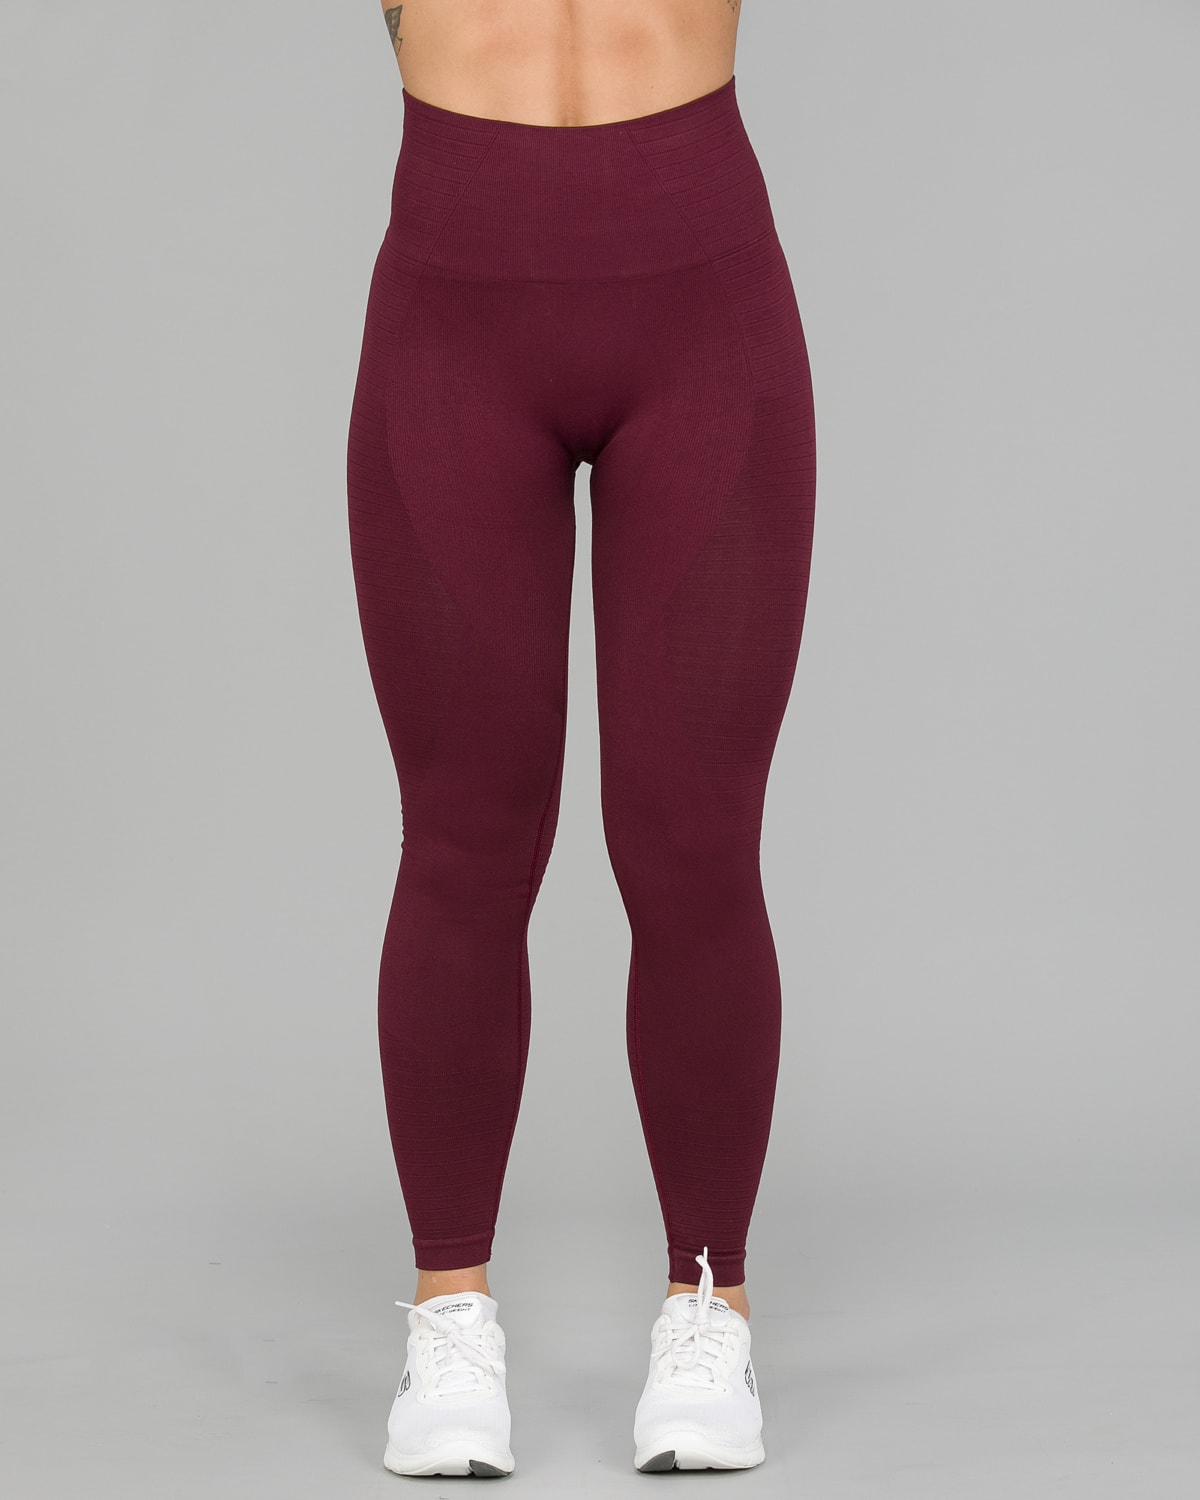 Jerf Gela 2.0 tights Maroon2